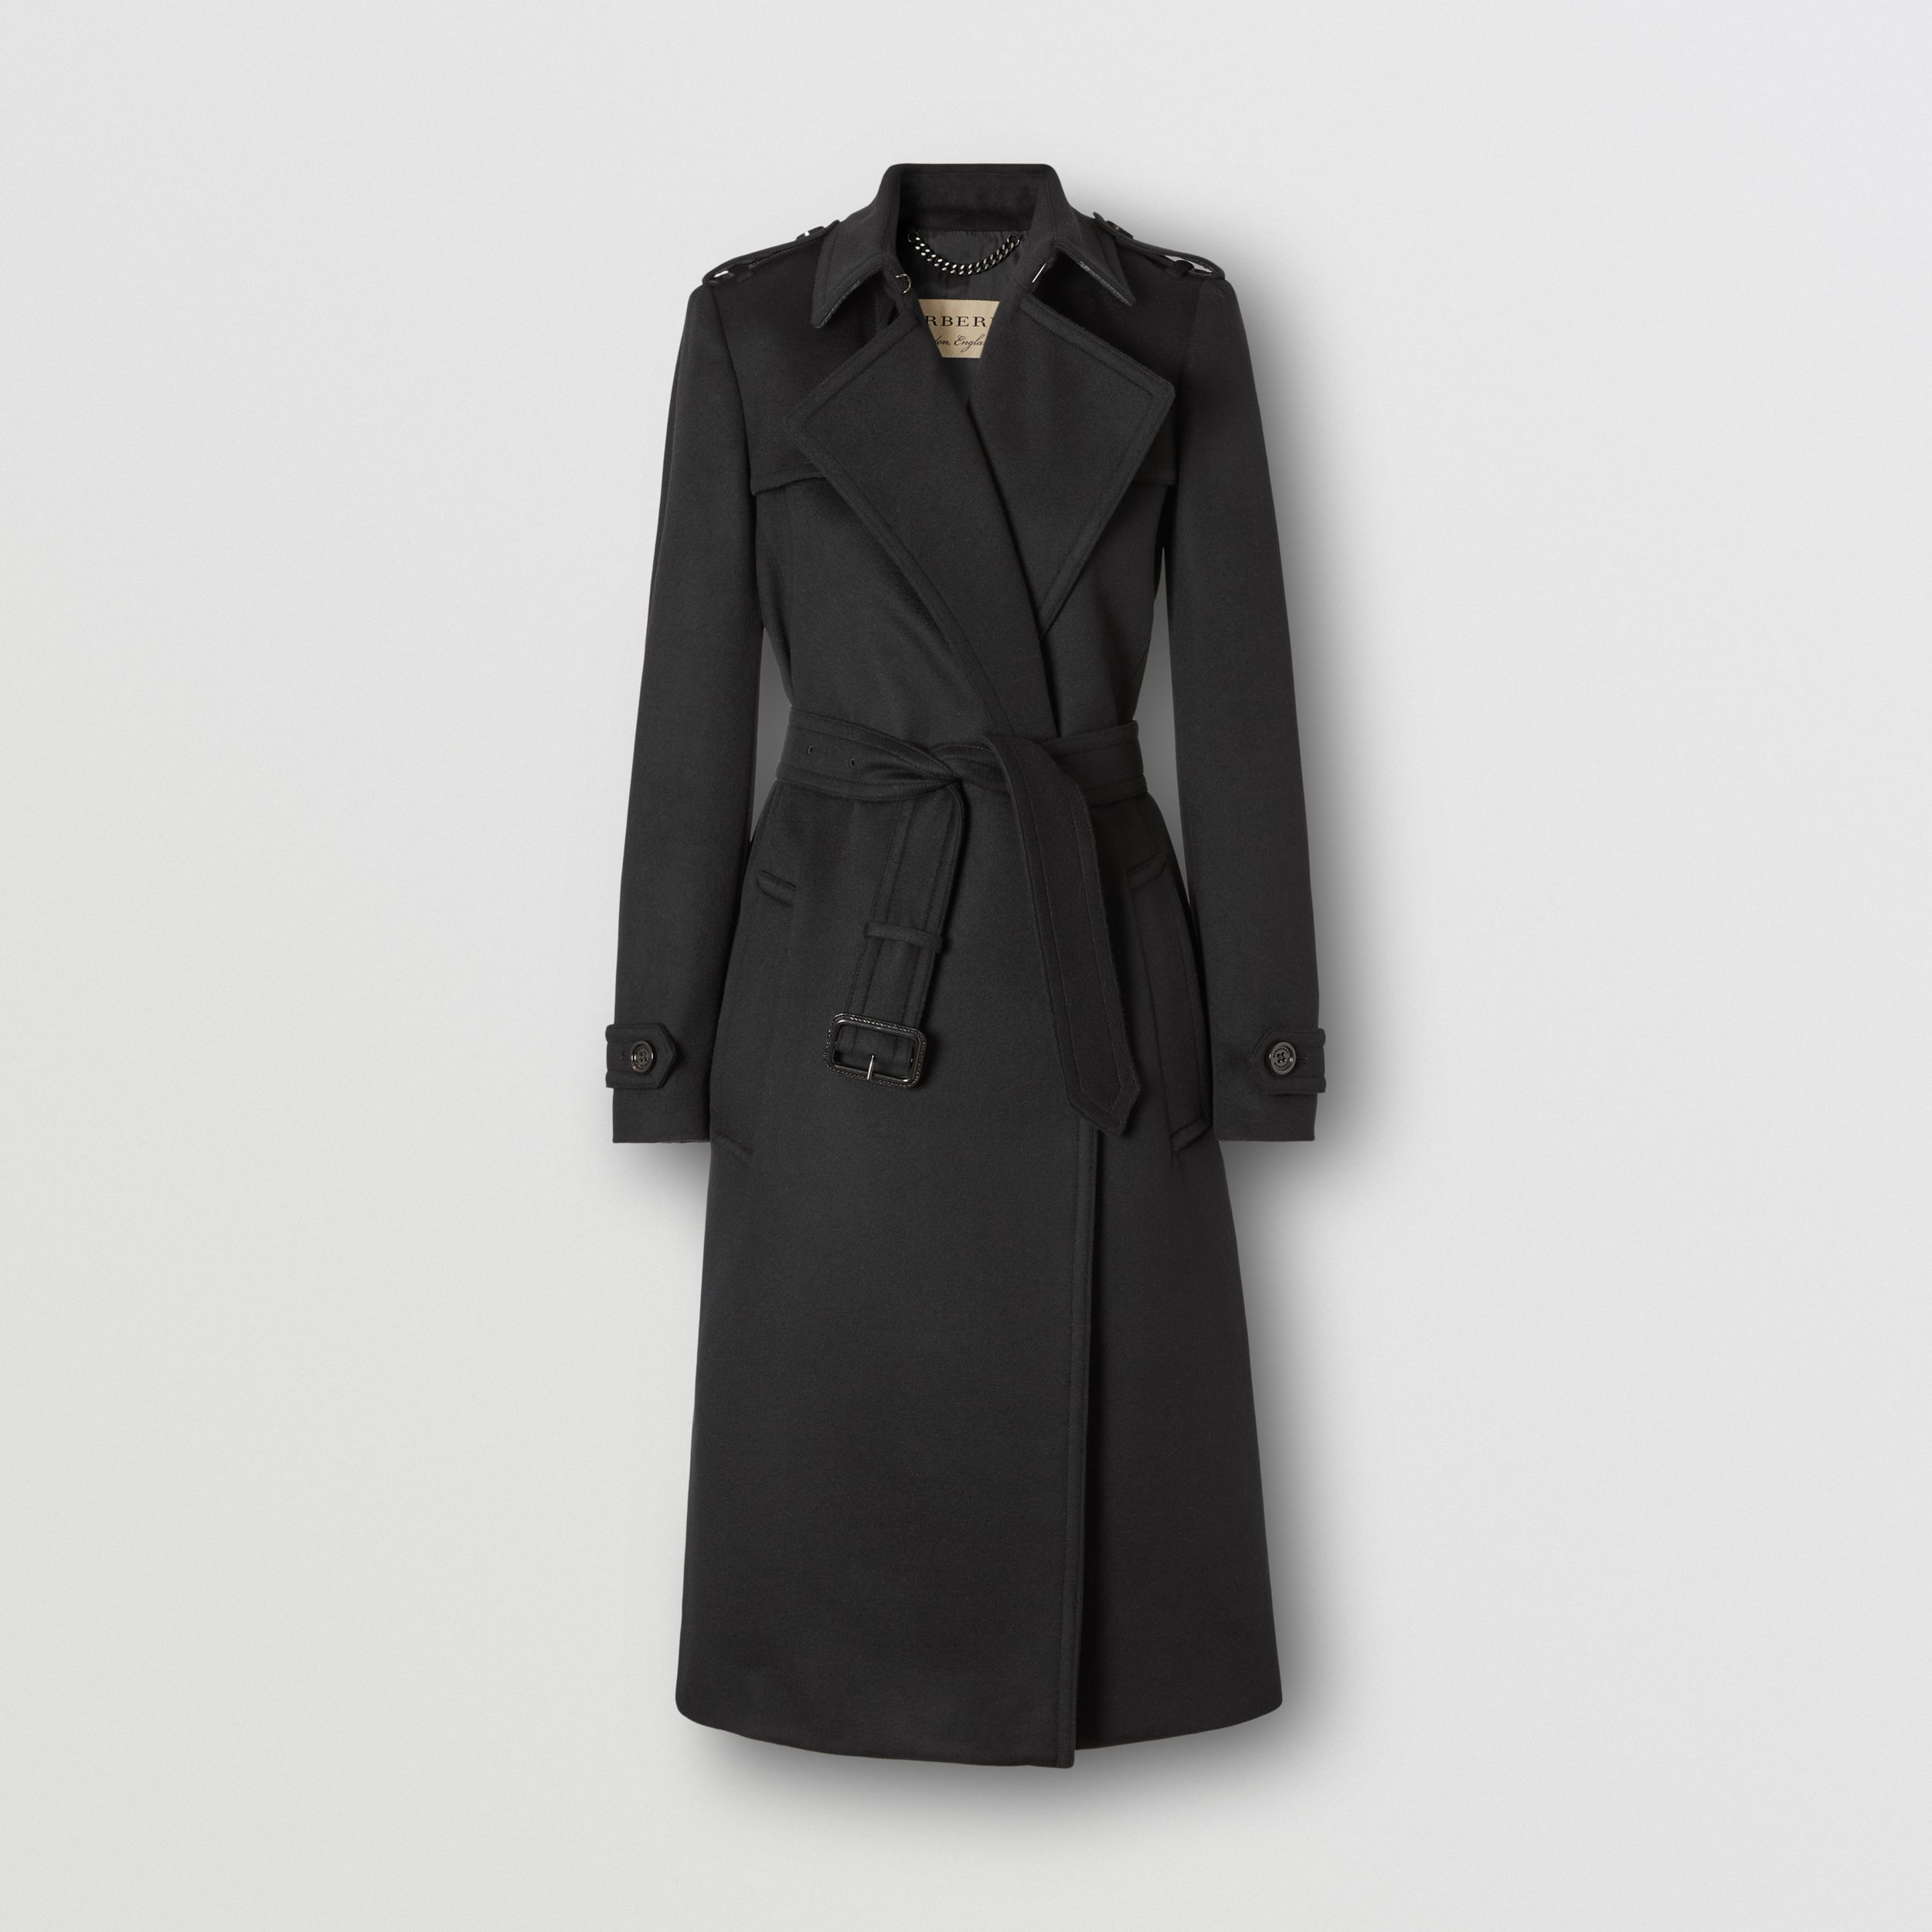 Wool Cashmere Trench Coat in Black - Women | Burberry - 1